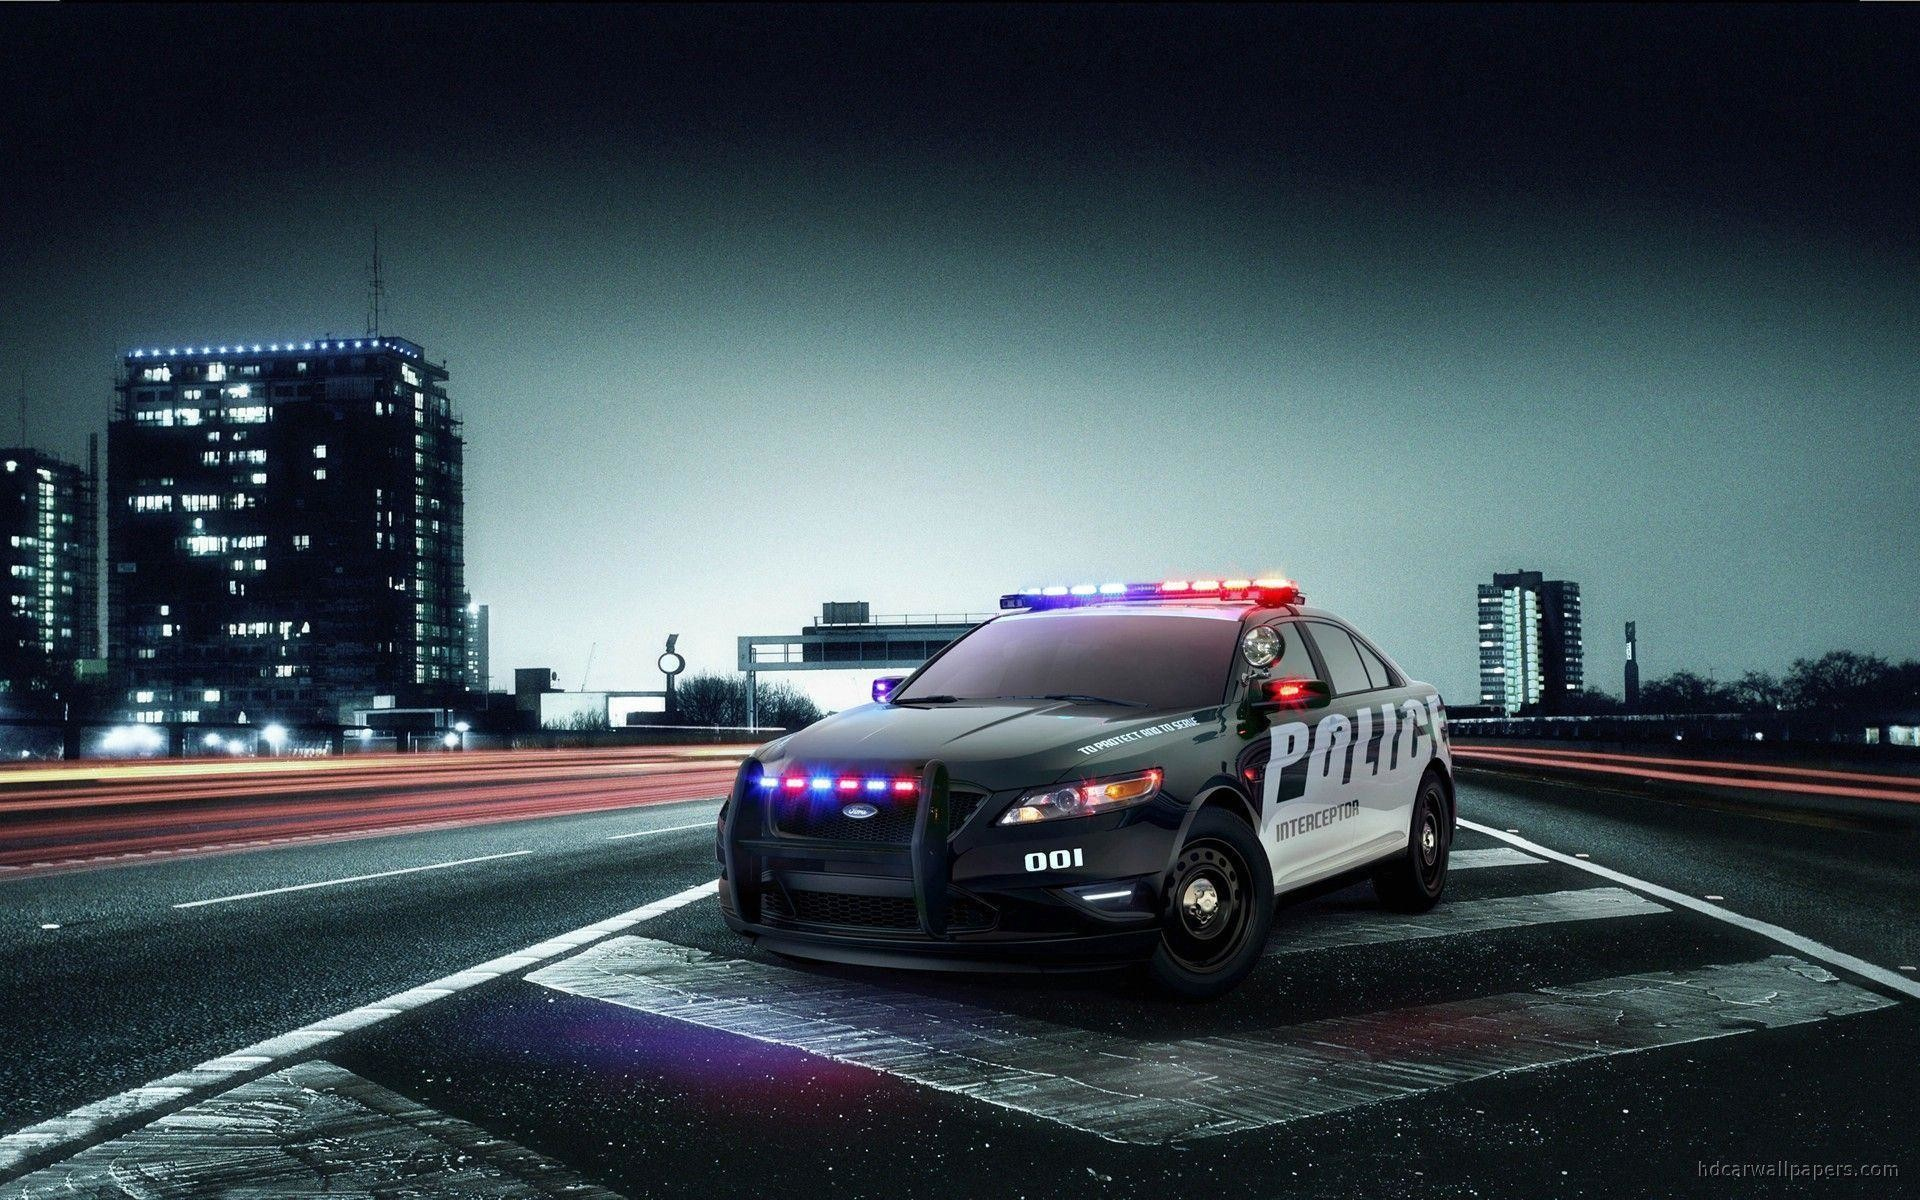 1920x1200 Wallpapers Tagged With POLICE | POLICE Car Wallpapers, Images